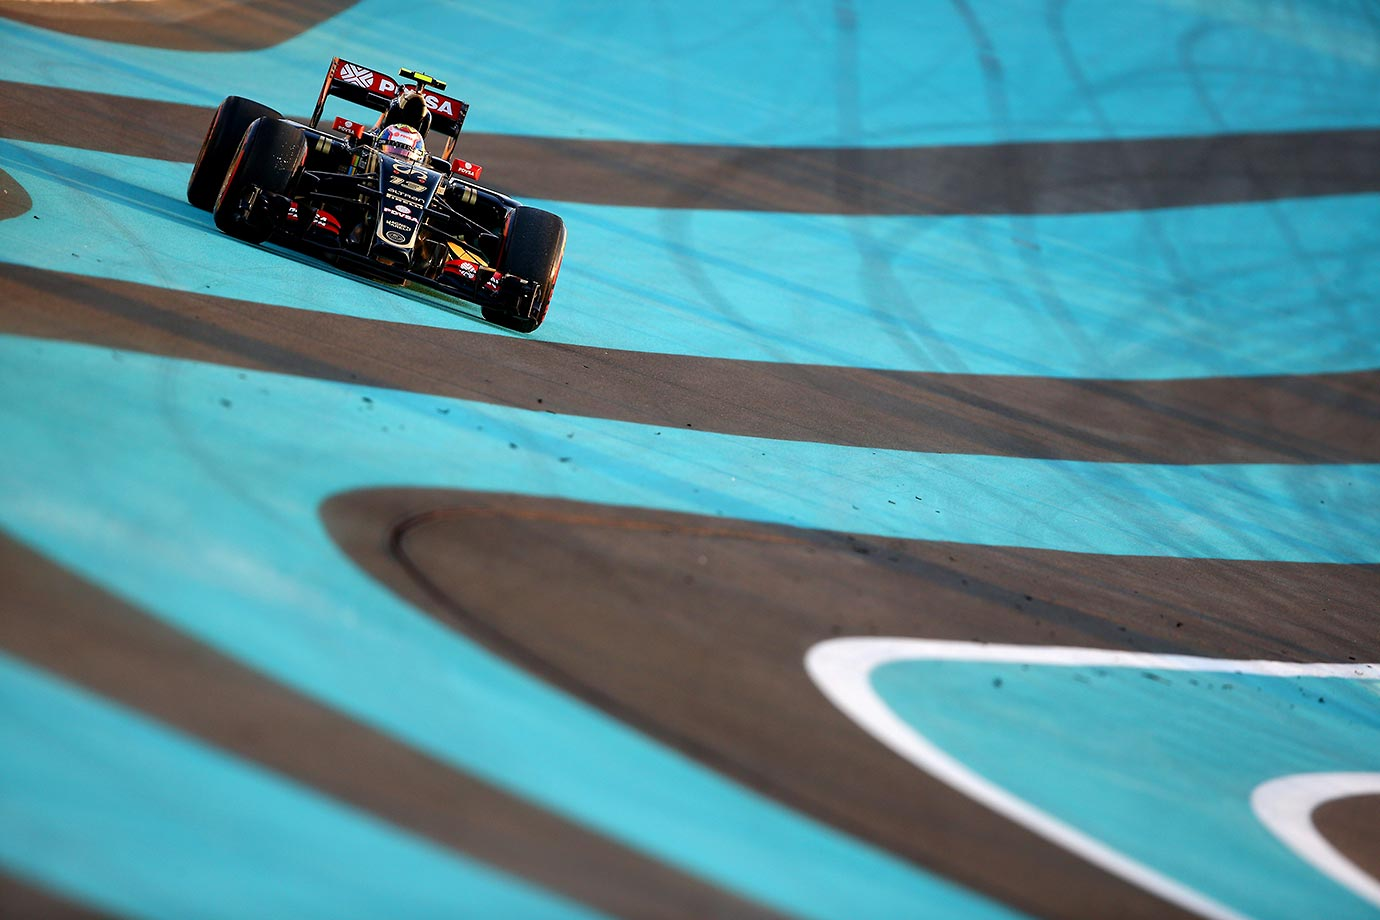 Pastor Maldonado runs wide during the Abu Dhabi Formula One Grand Prix.